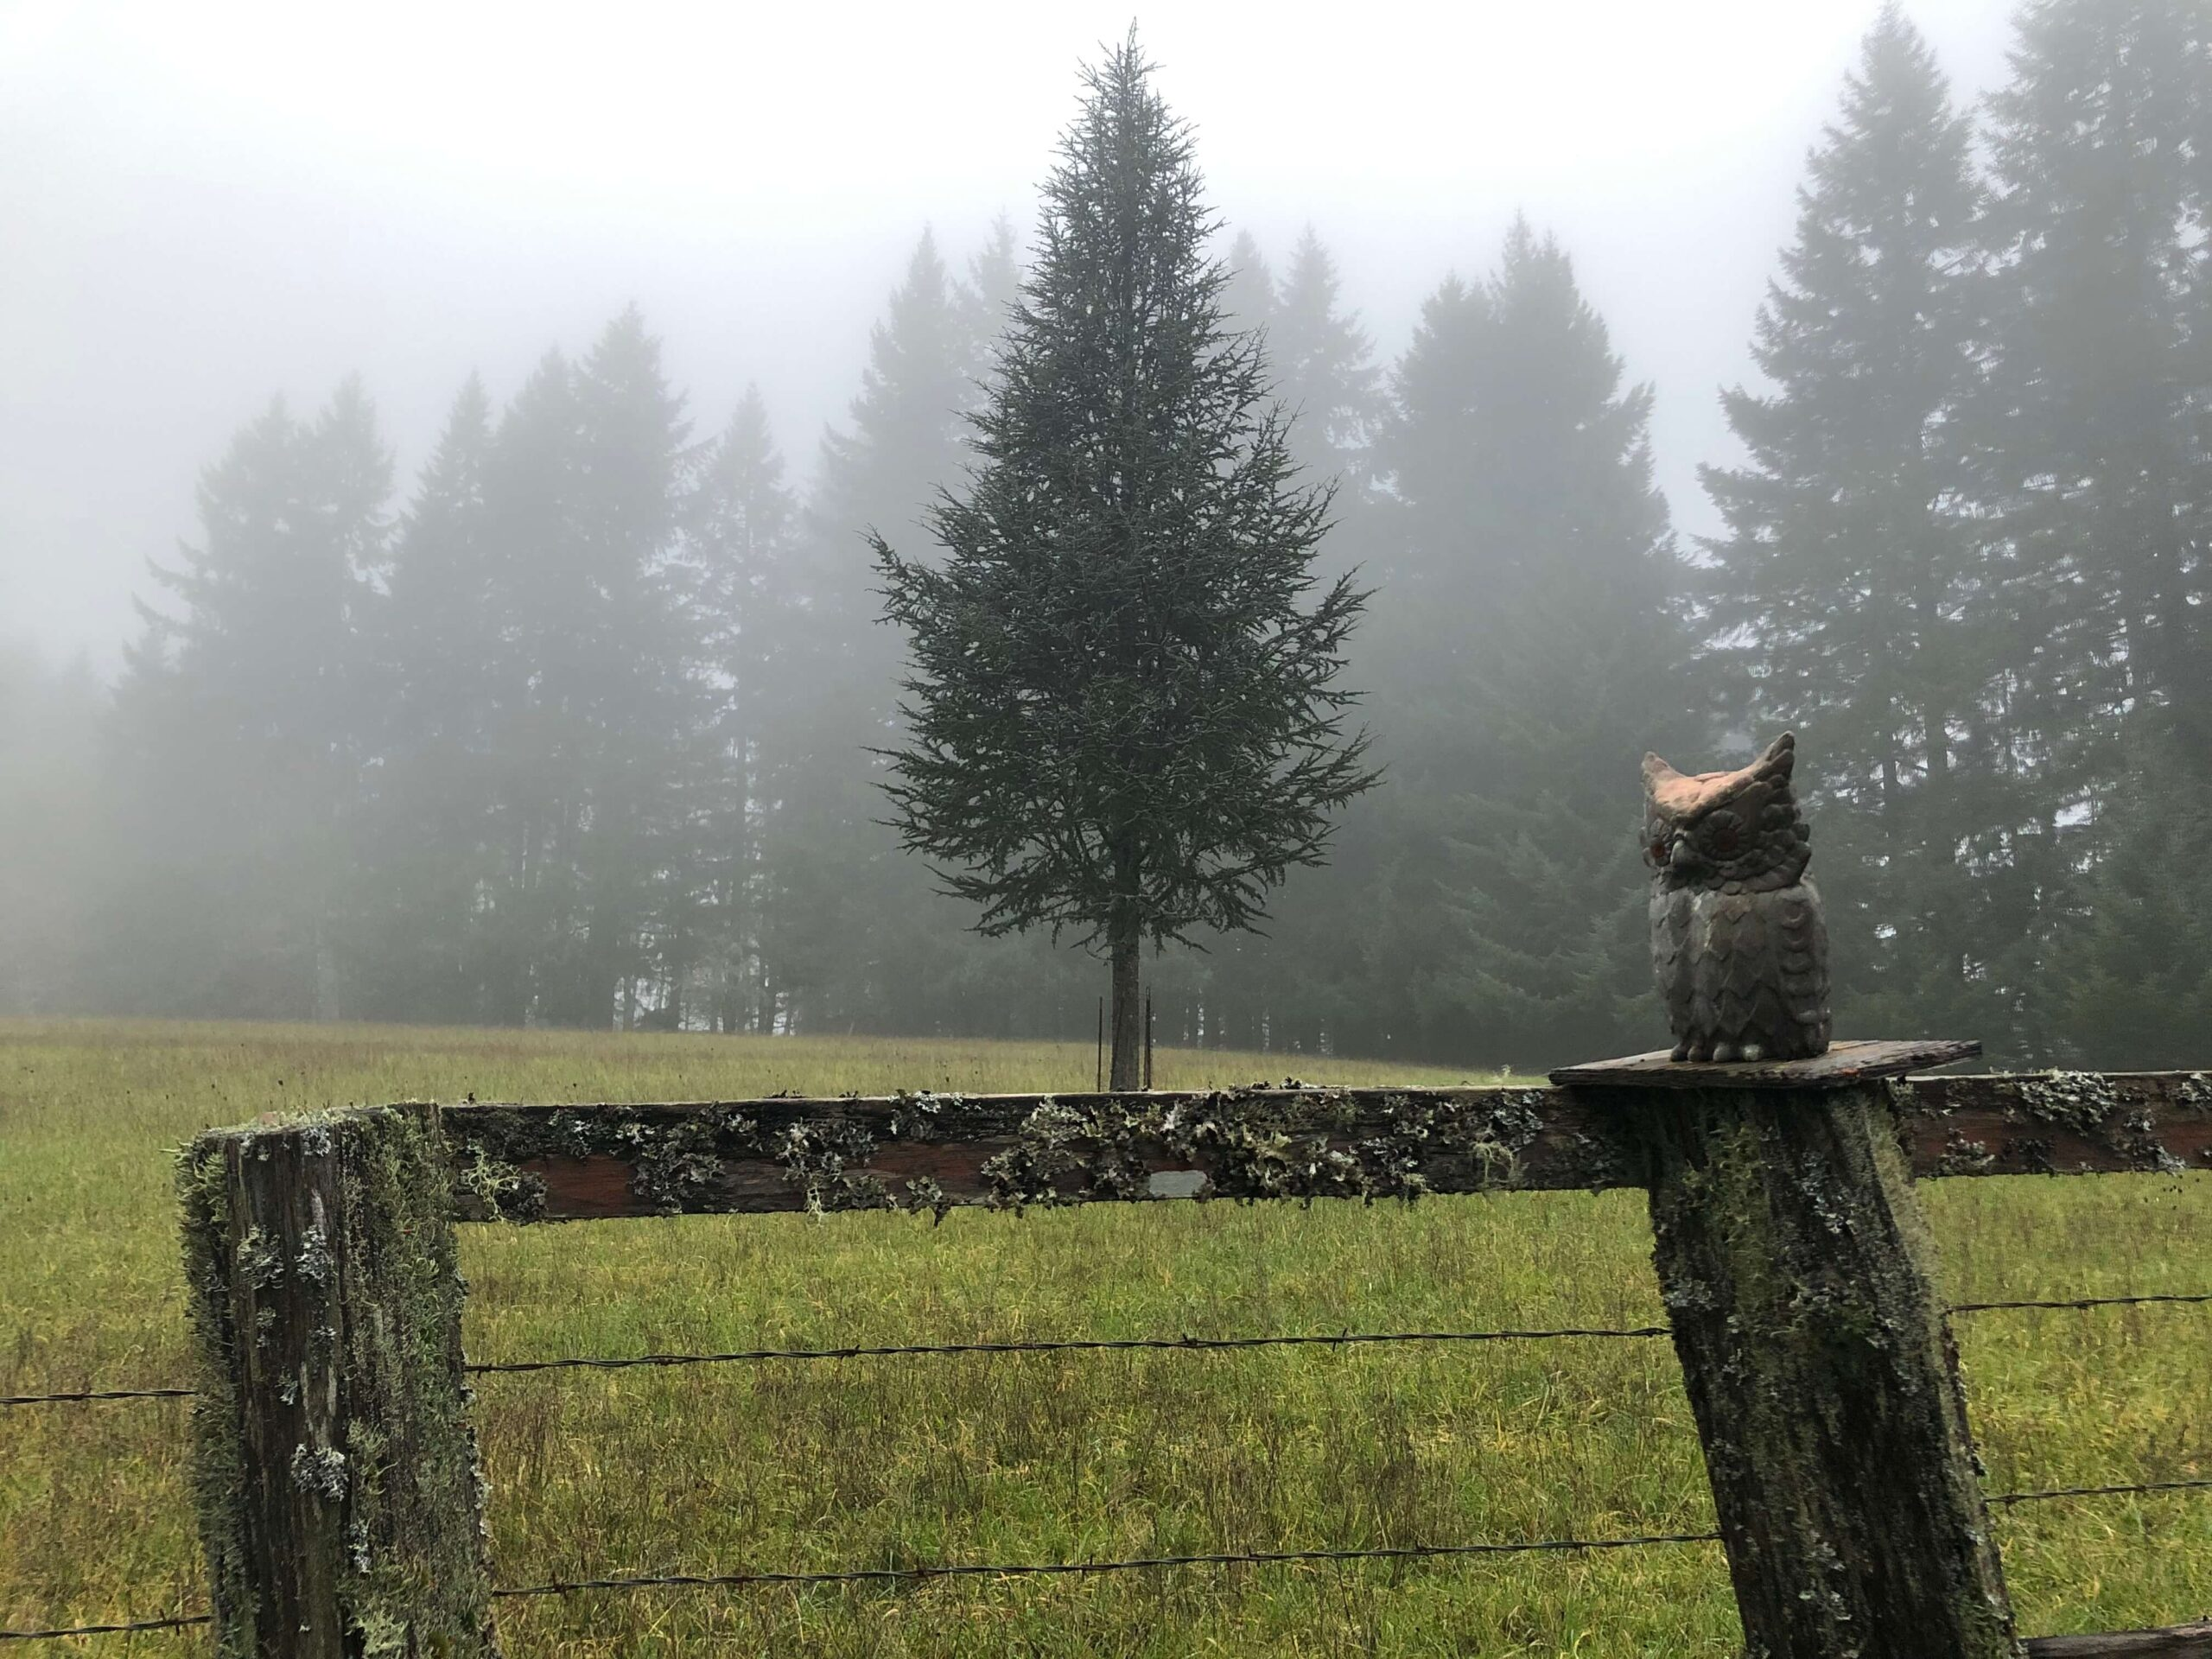 Photograph of fence and field illustrating forced perspective where tree appears to be sprouting from fence..